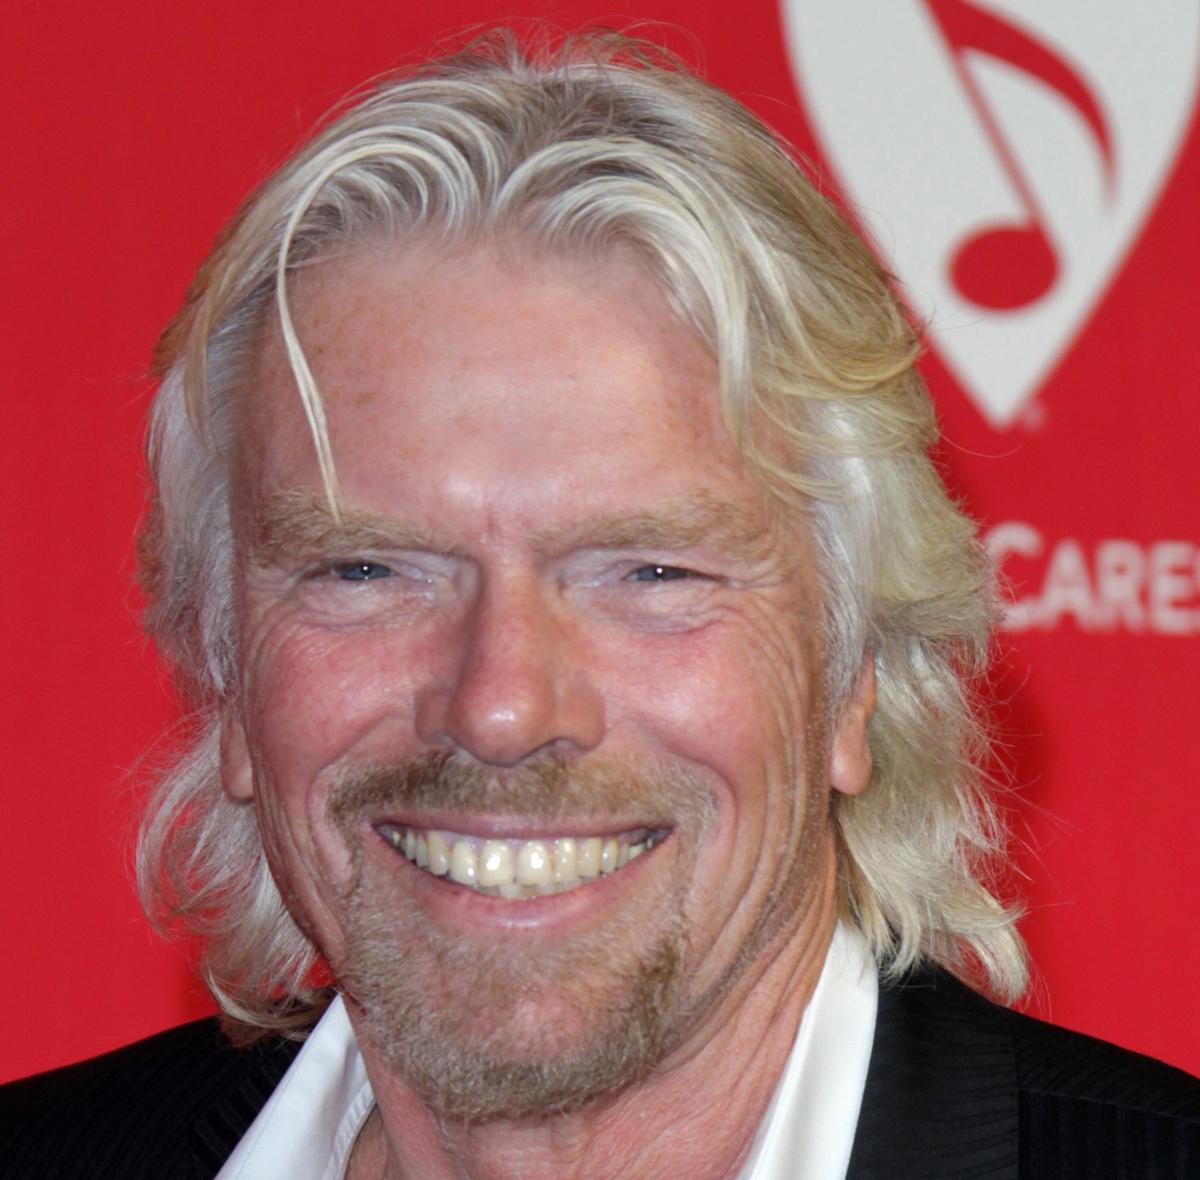 The global gym chain was founded by Sir Richard Branson in 1999